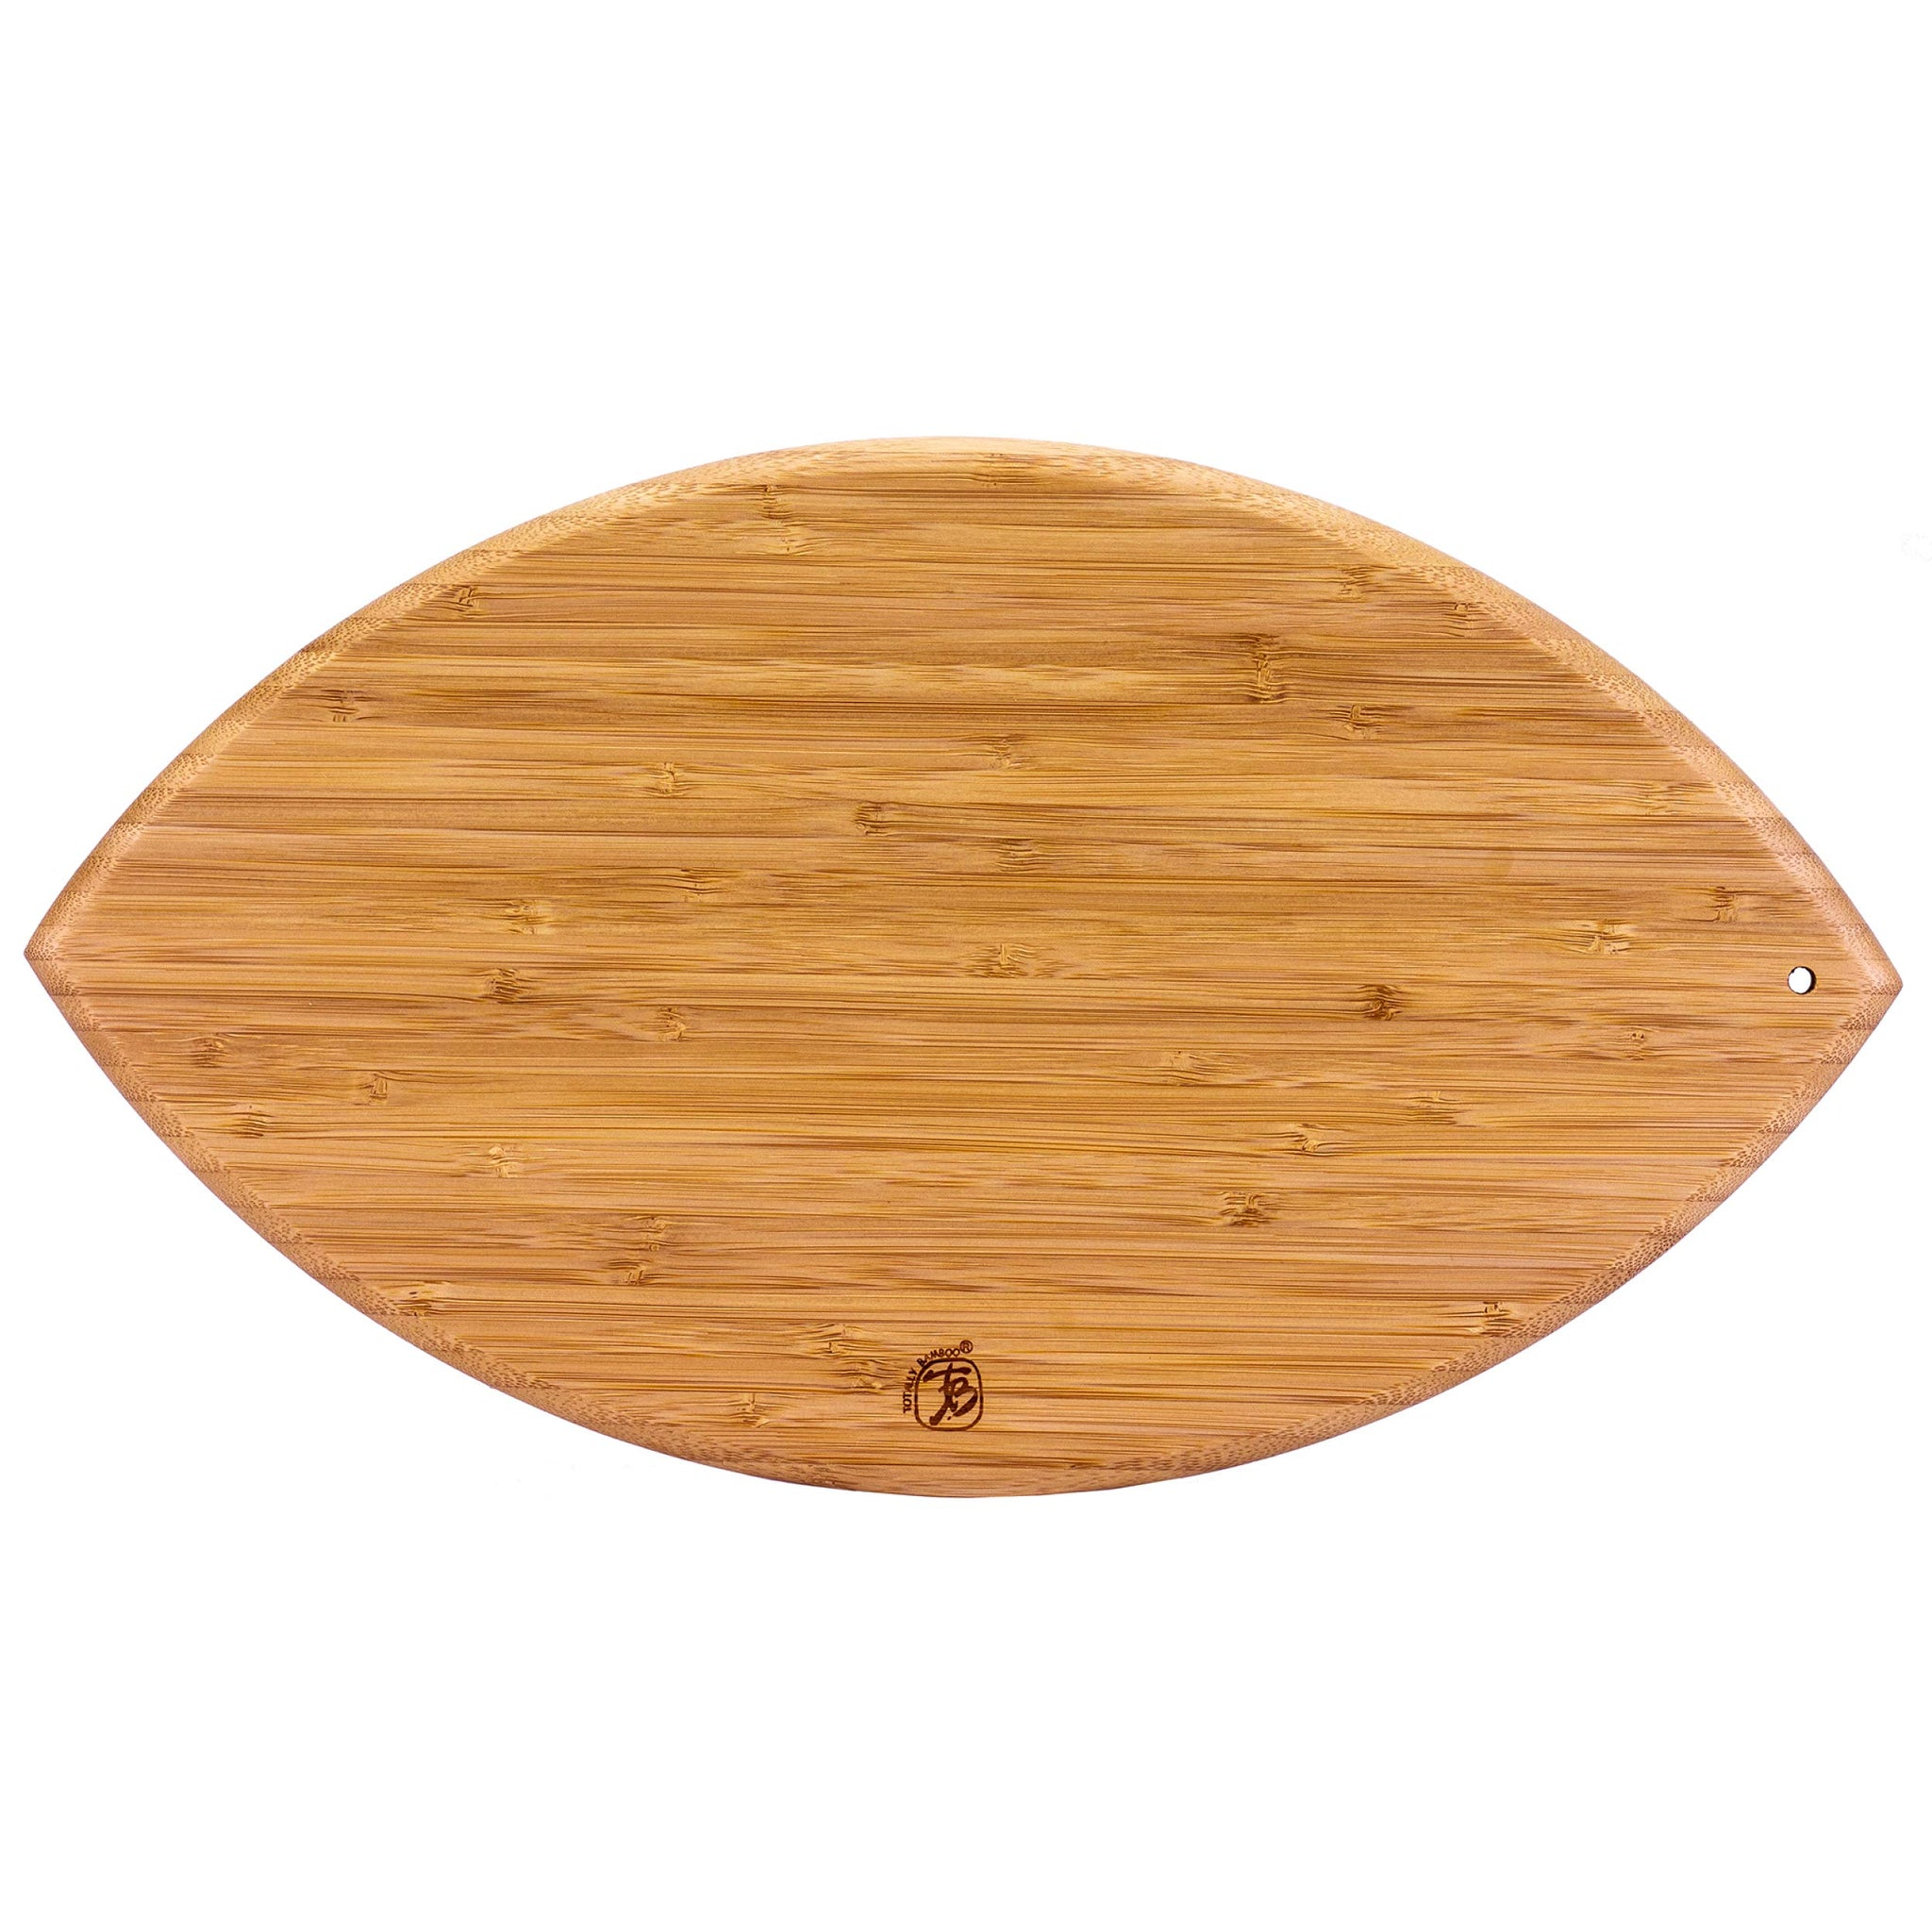 "Totally Bamboo Football Shaped Bamboo Serving and Cutting Board, 14"" x 8-1/2"""